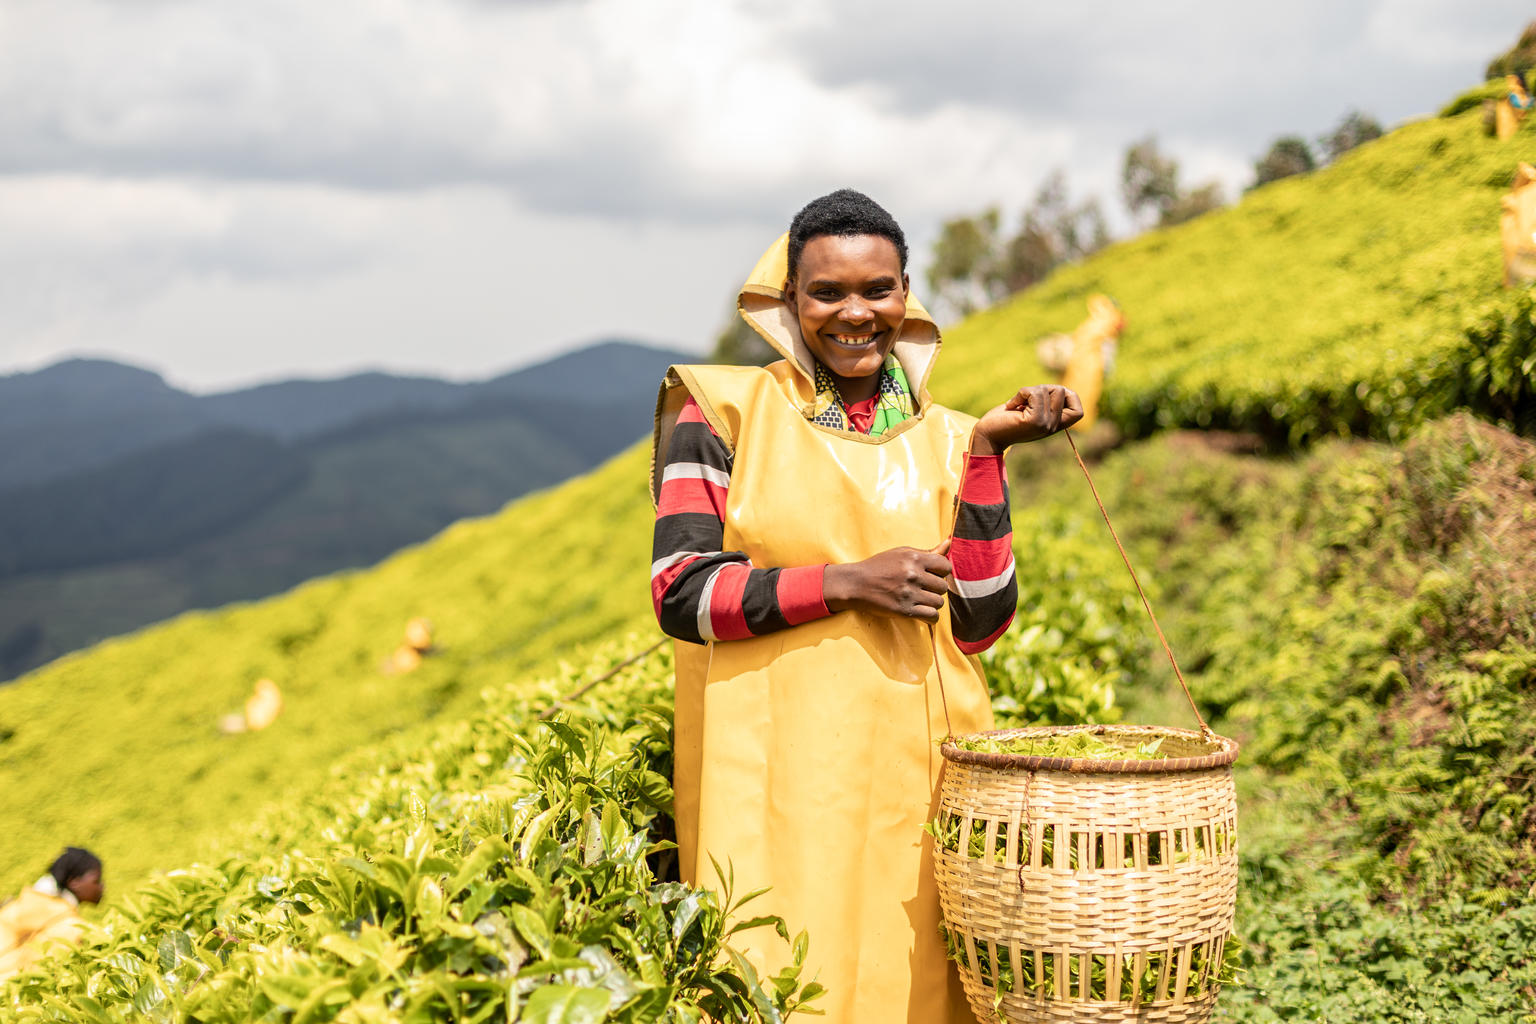 A woman on a hillside with a basket of tea leaves